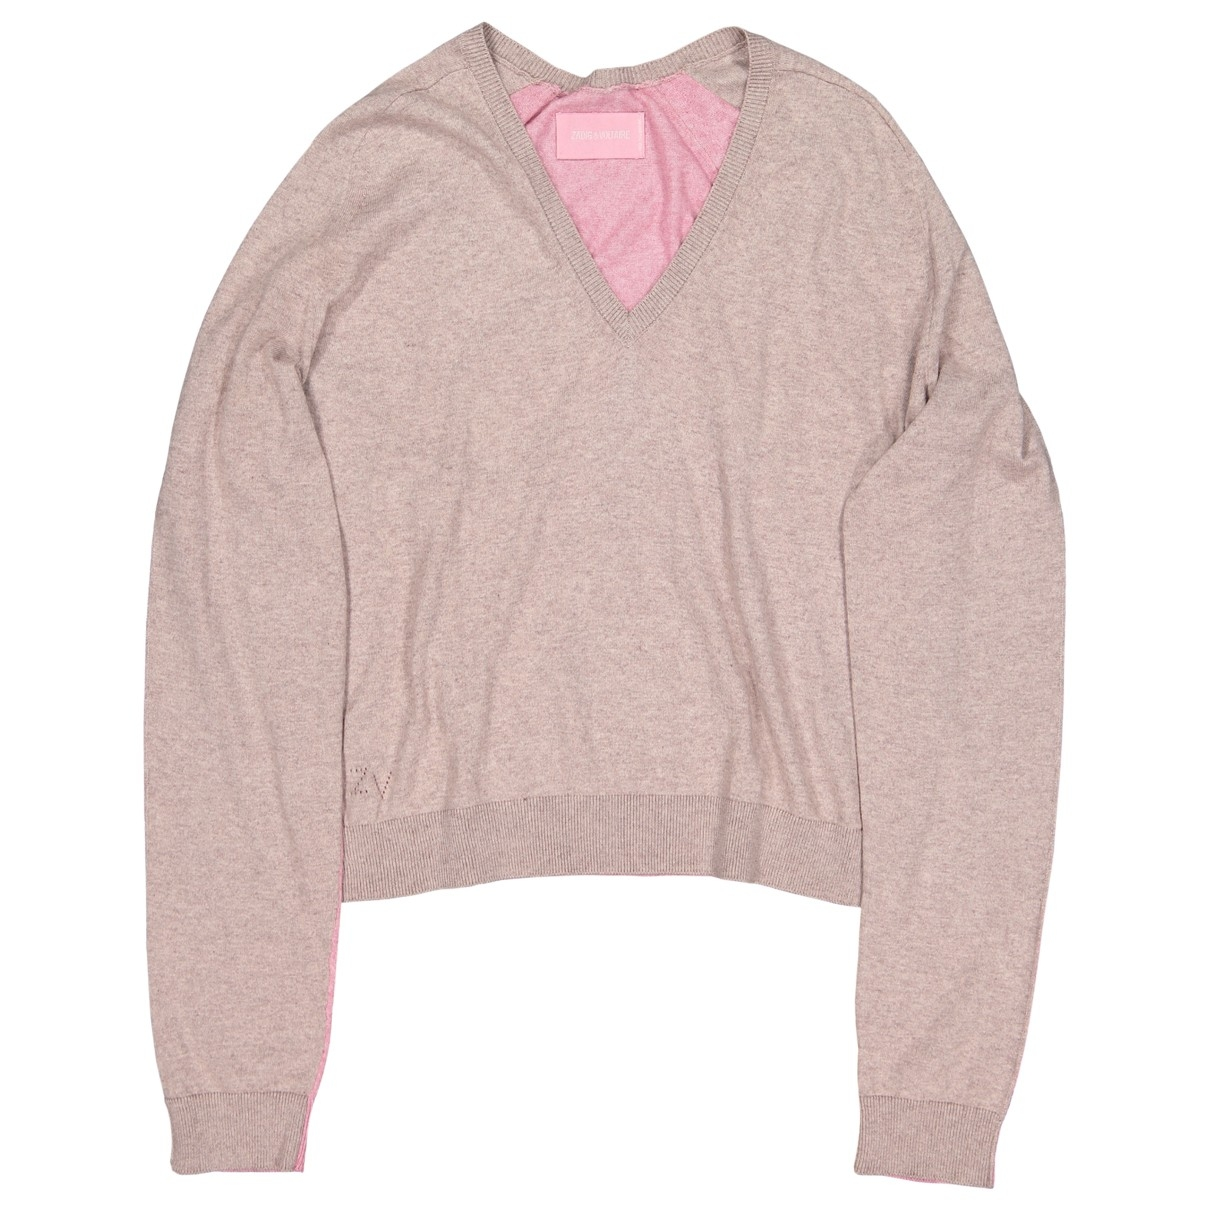 Zadig & Voltaire \N Pink Cotton Knitwear for Women S International